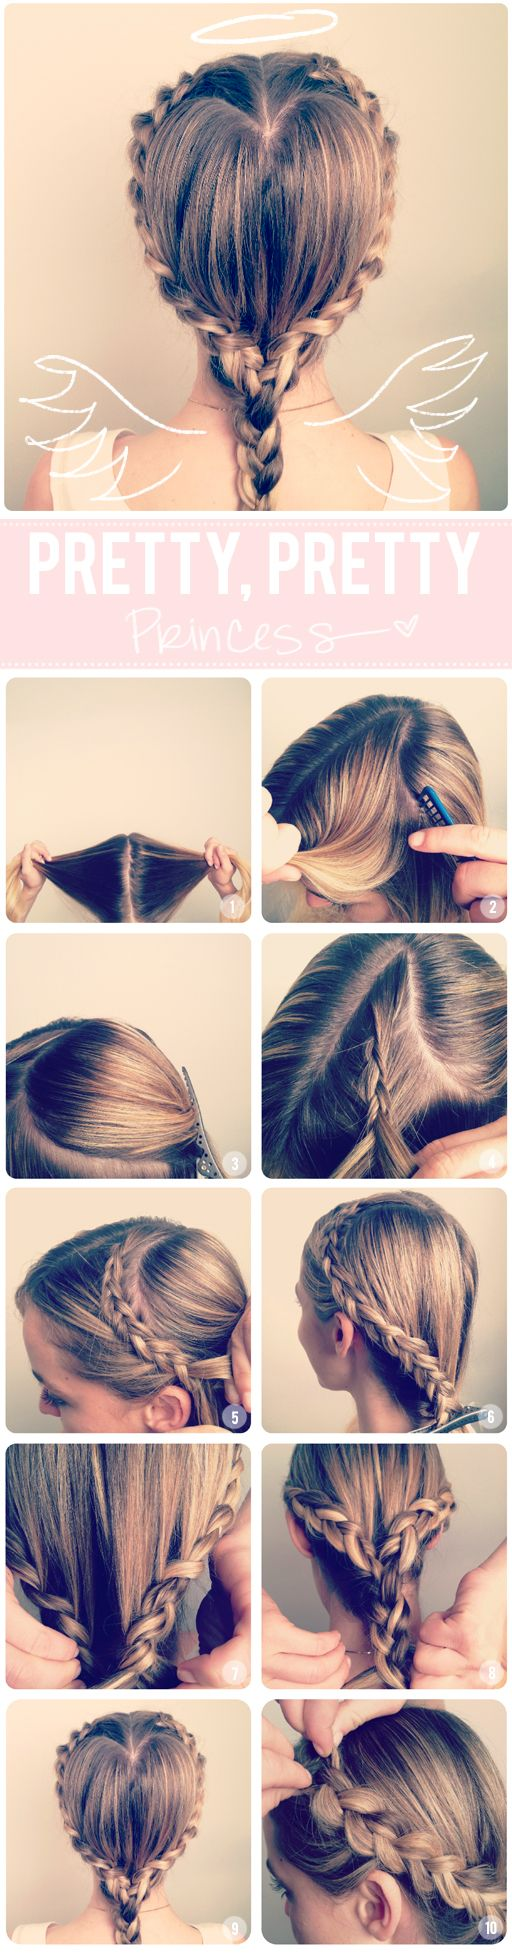 best beauté maquillage images on pinterest hair dos